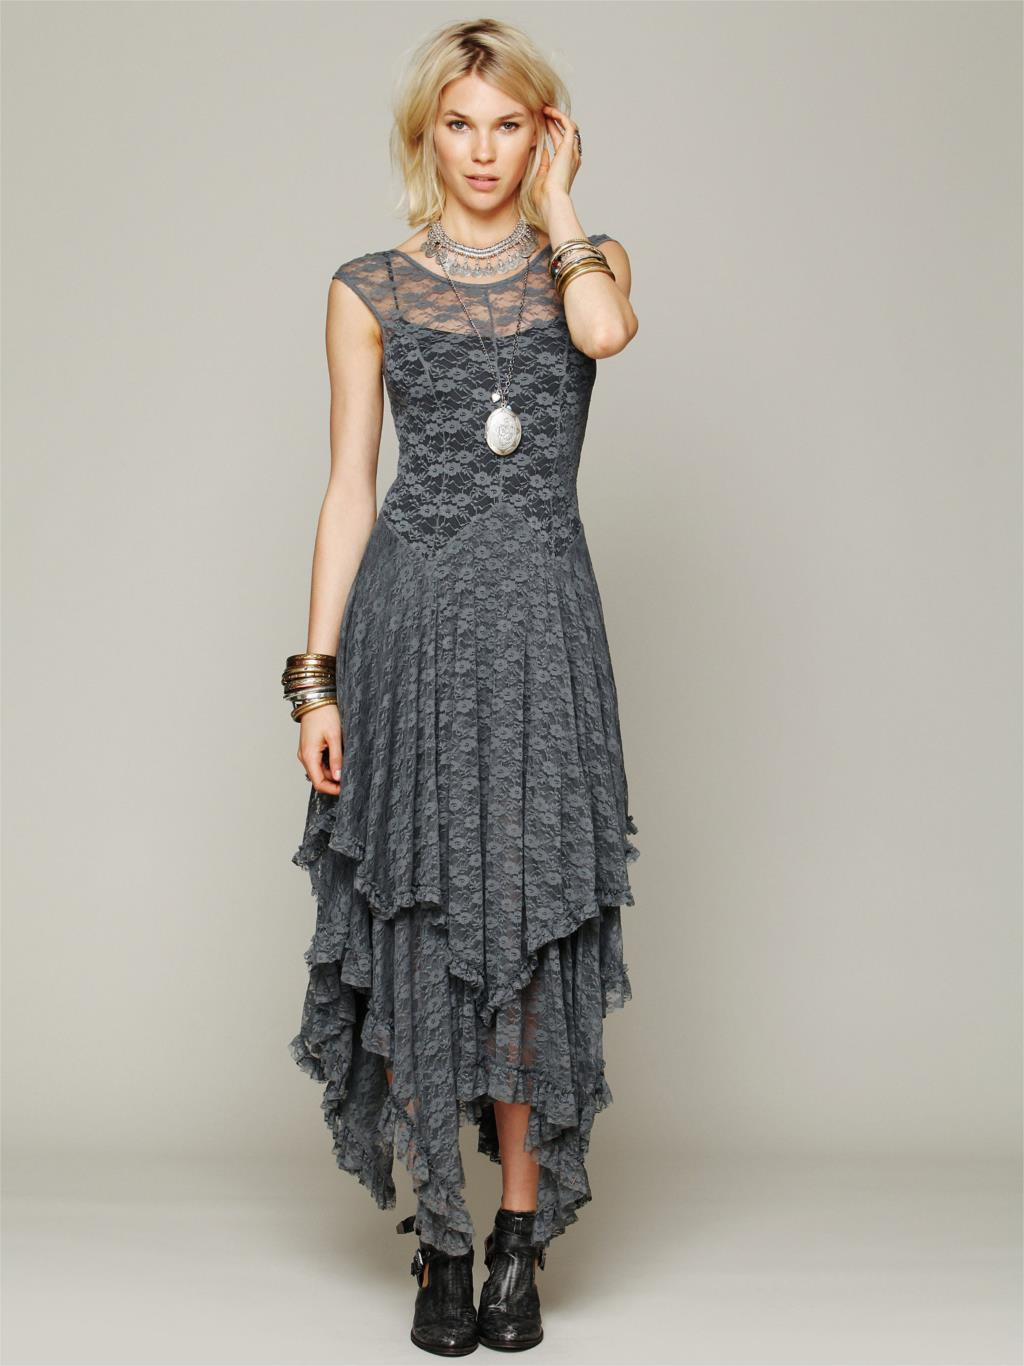 82257360ca6 Boho People Hippie Style Asymmetrical Embroidery Sheer Lace Dresses ...